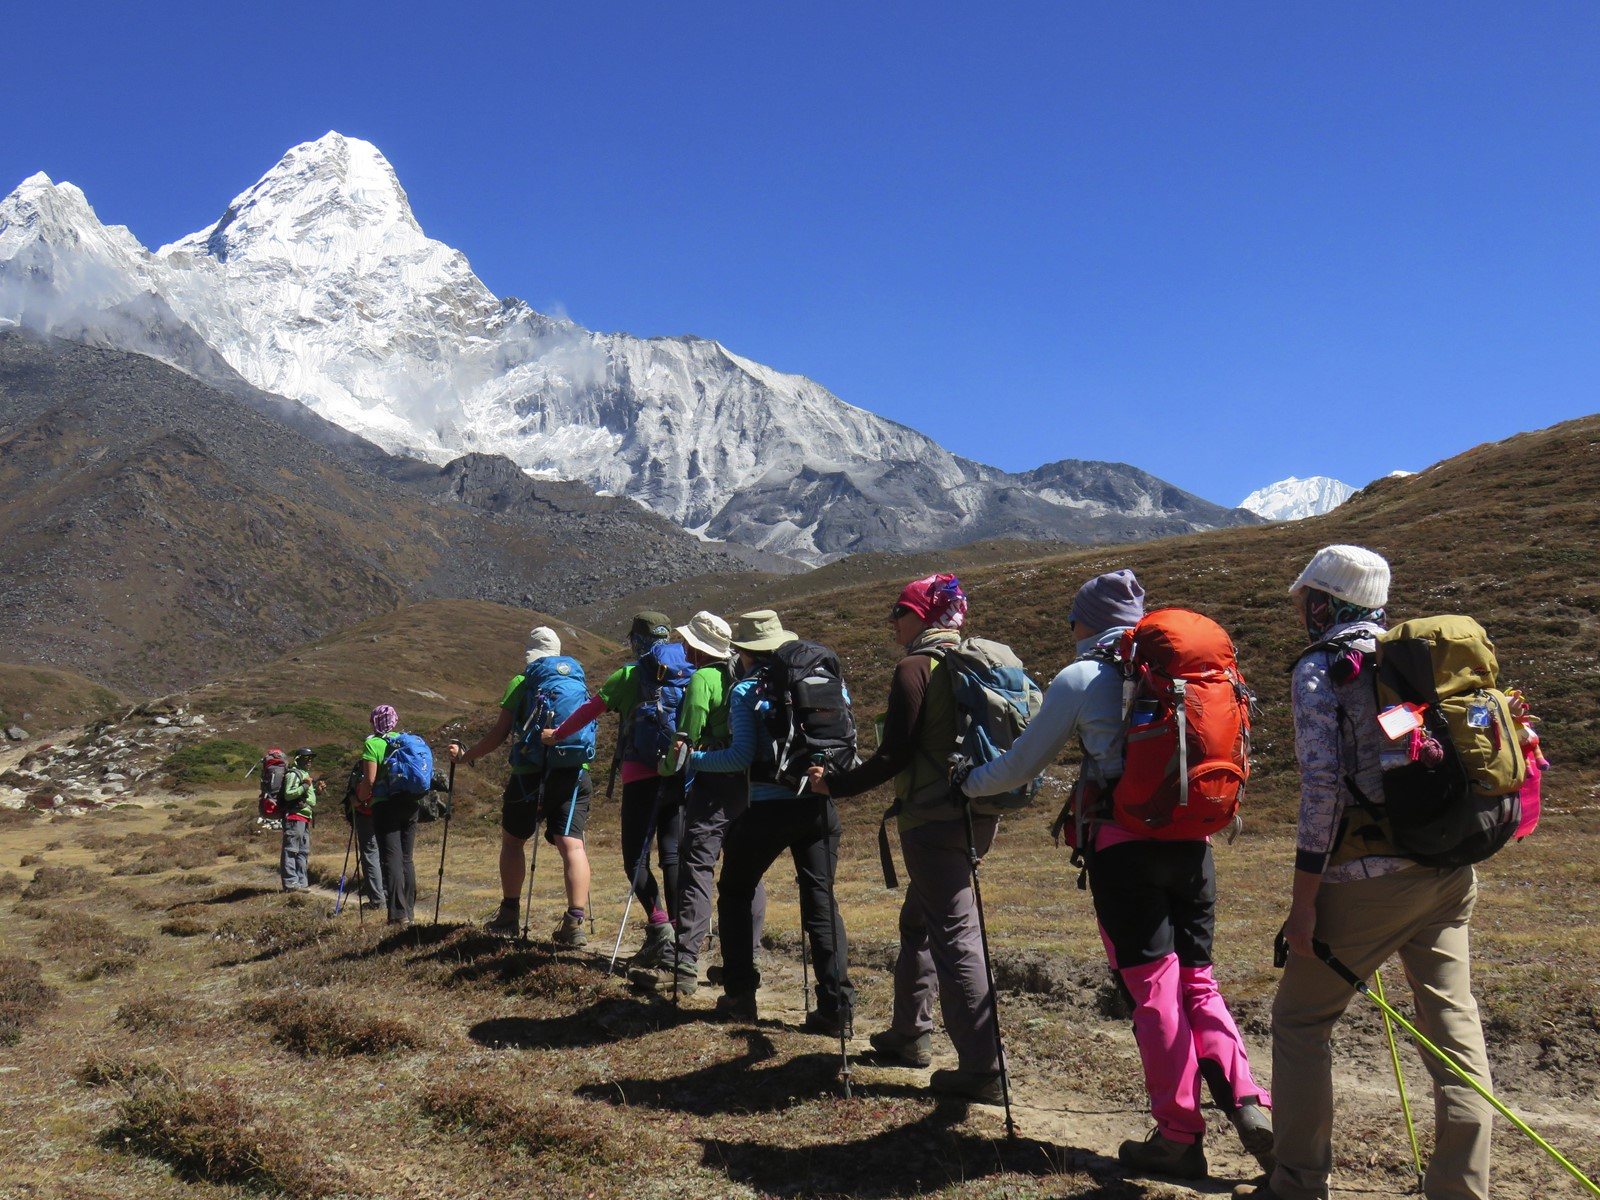 Women-only trekking trip - North